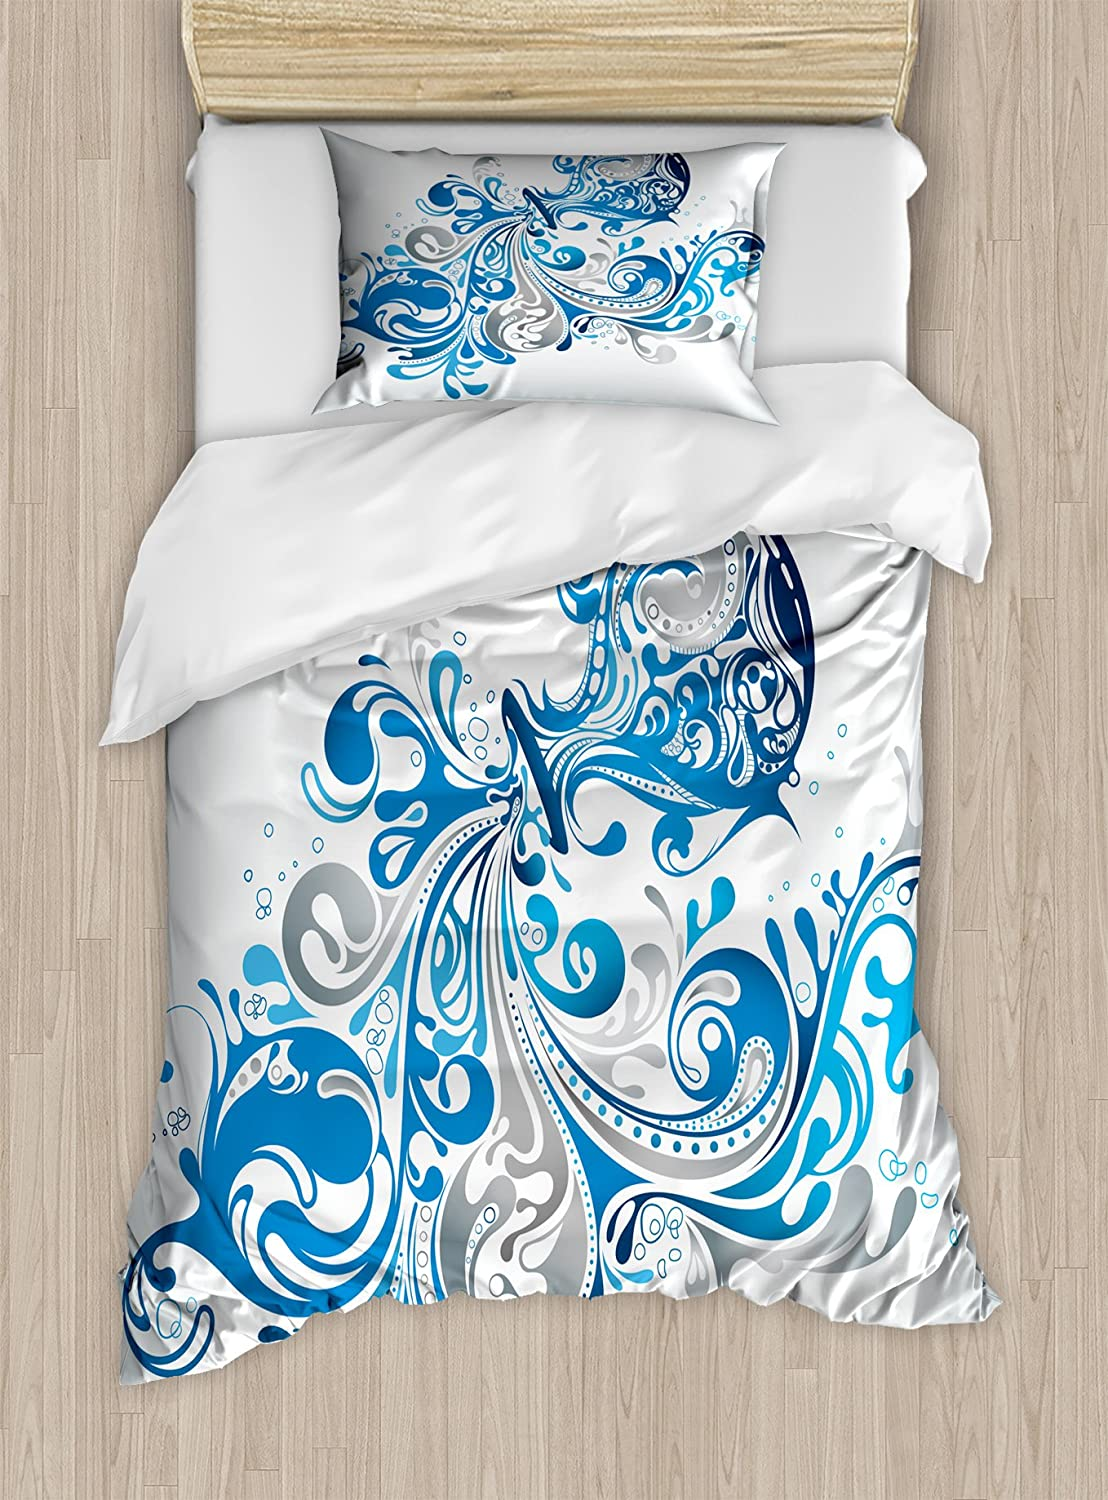 Ambesonne Zodiac Aquarius Twin Size Duvet Cover Set, Bucket with Ornamental Swirled Lines Artistic Scroll Horoscope, Decorative 2 Piece Bedding Set with 1 Pillow Sham, Silver Grey Cobalt Blue